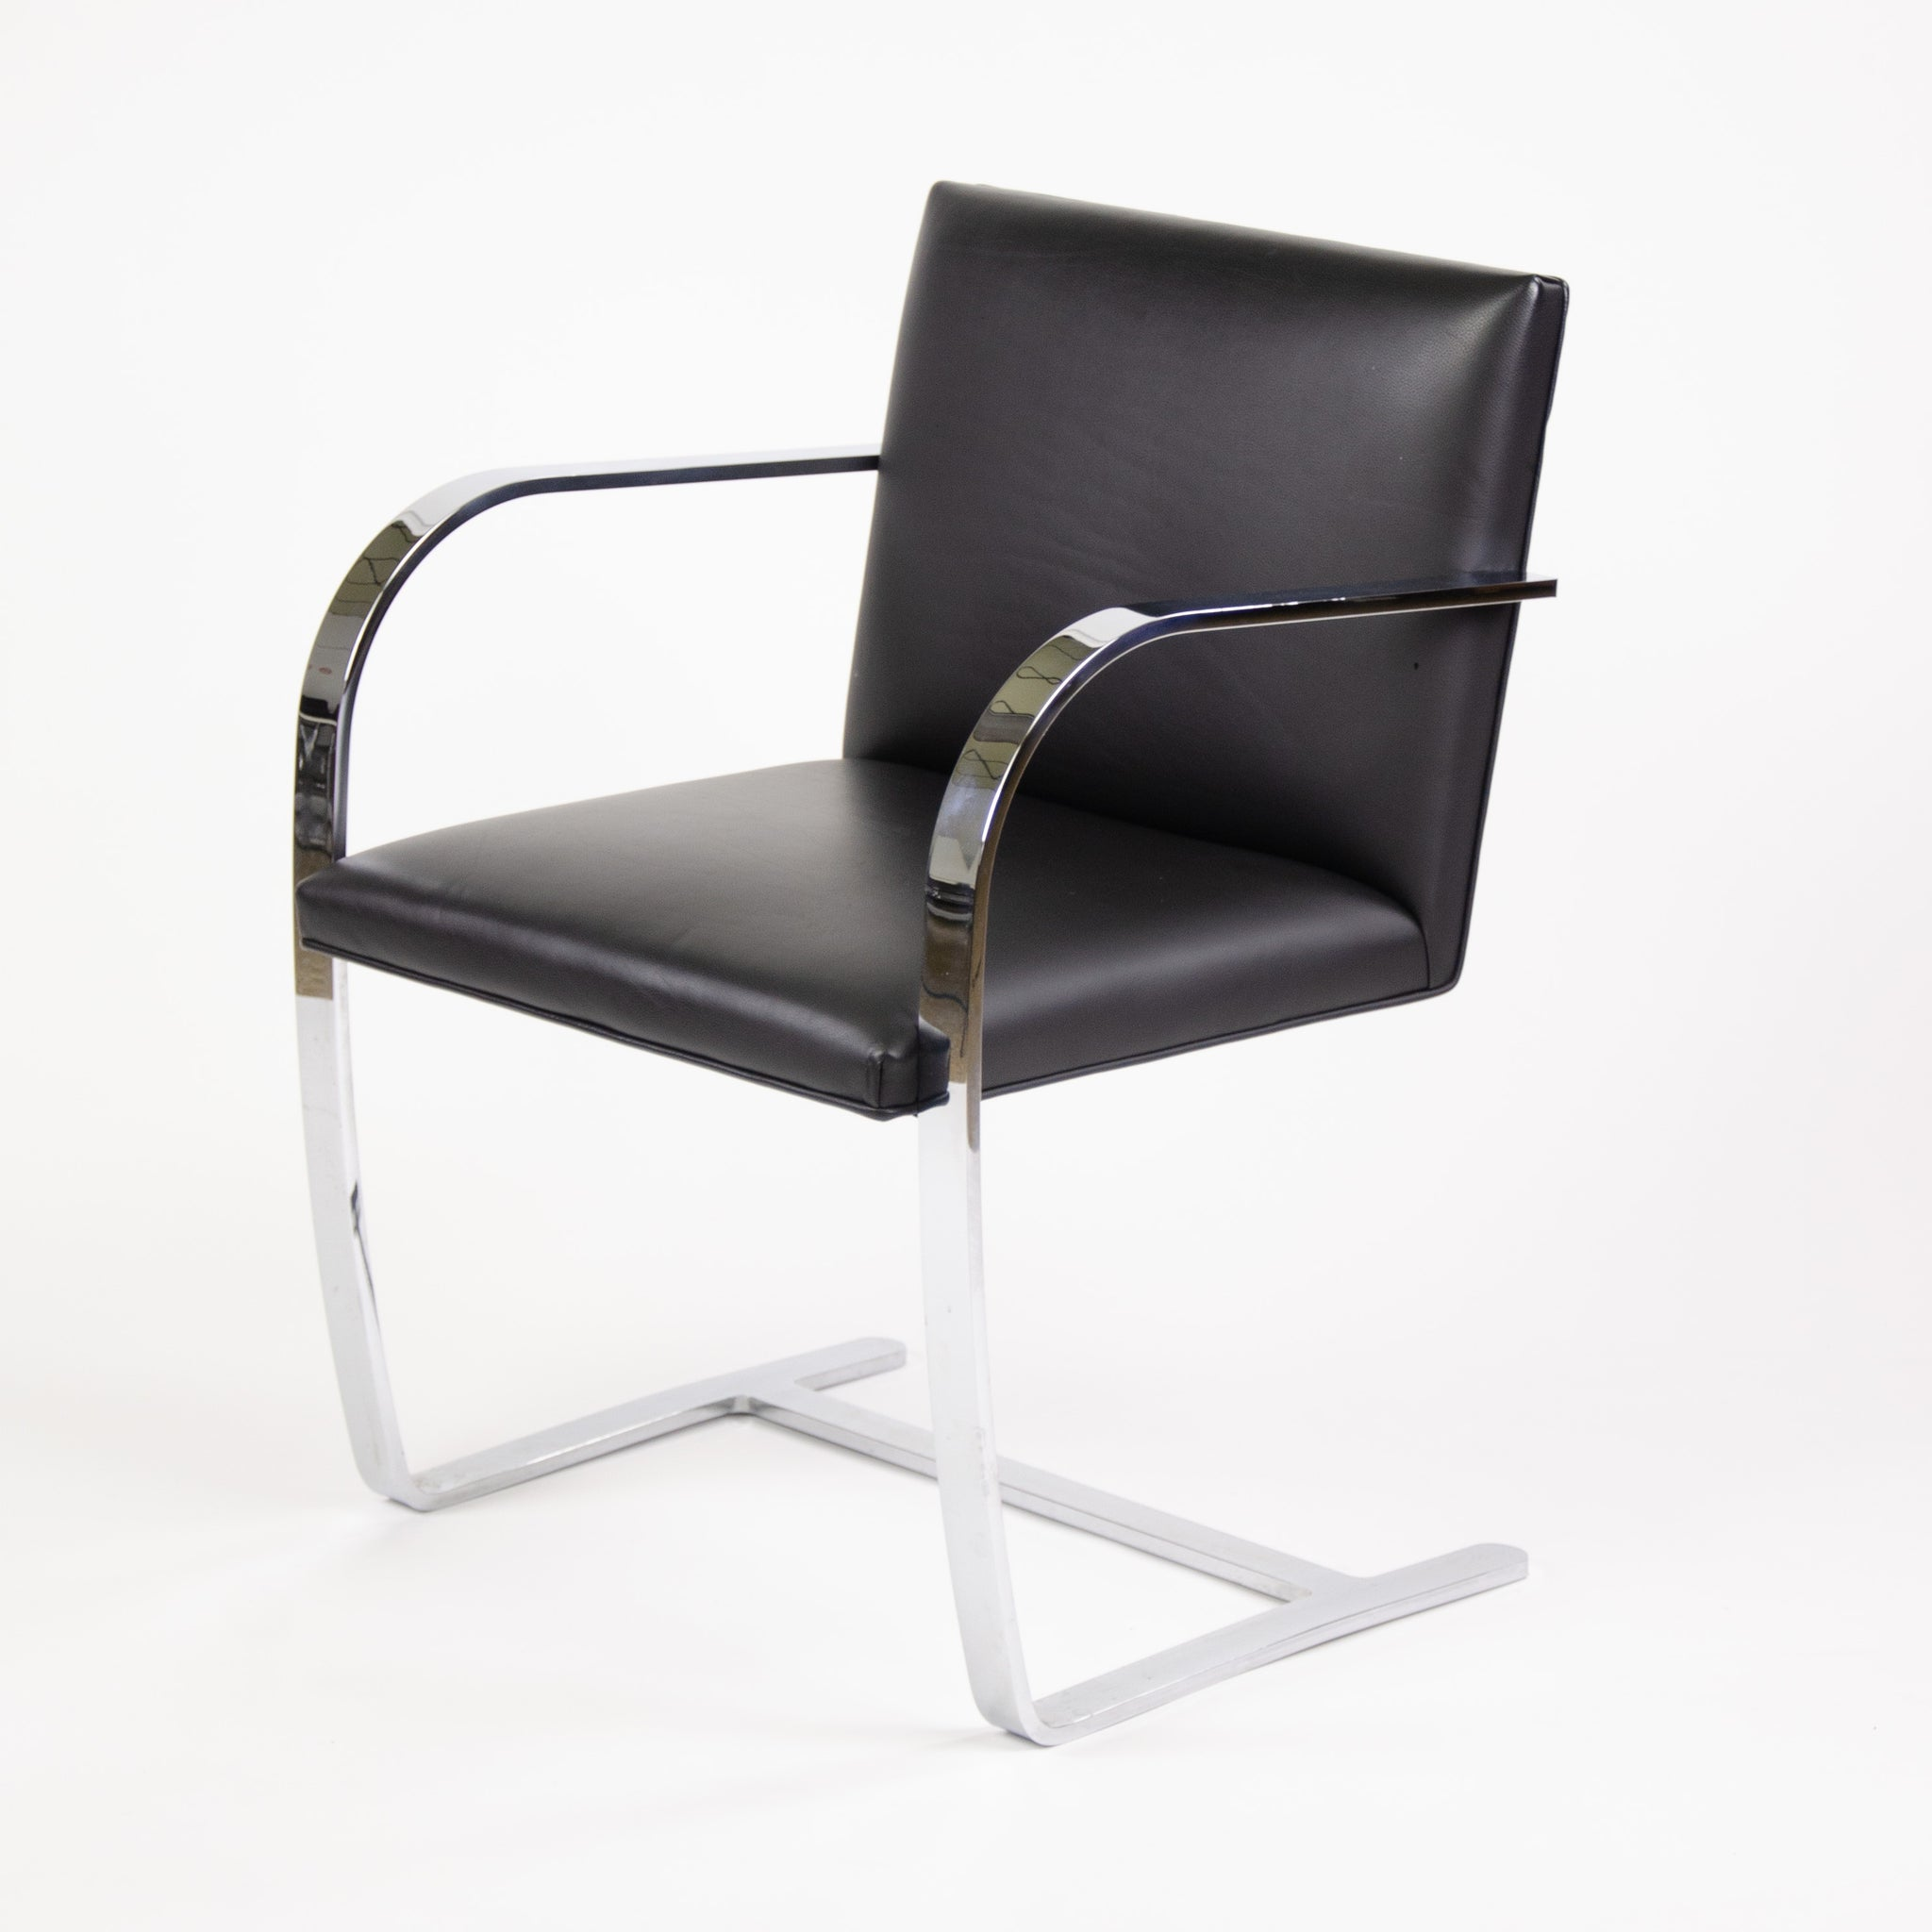 SOLD Knoll Mies Van Der Rohe Brno Chairs Black Leather Sets Available 2000s MINT